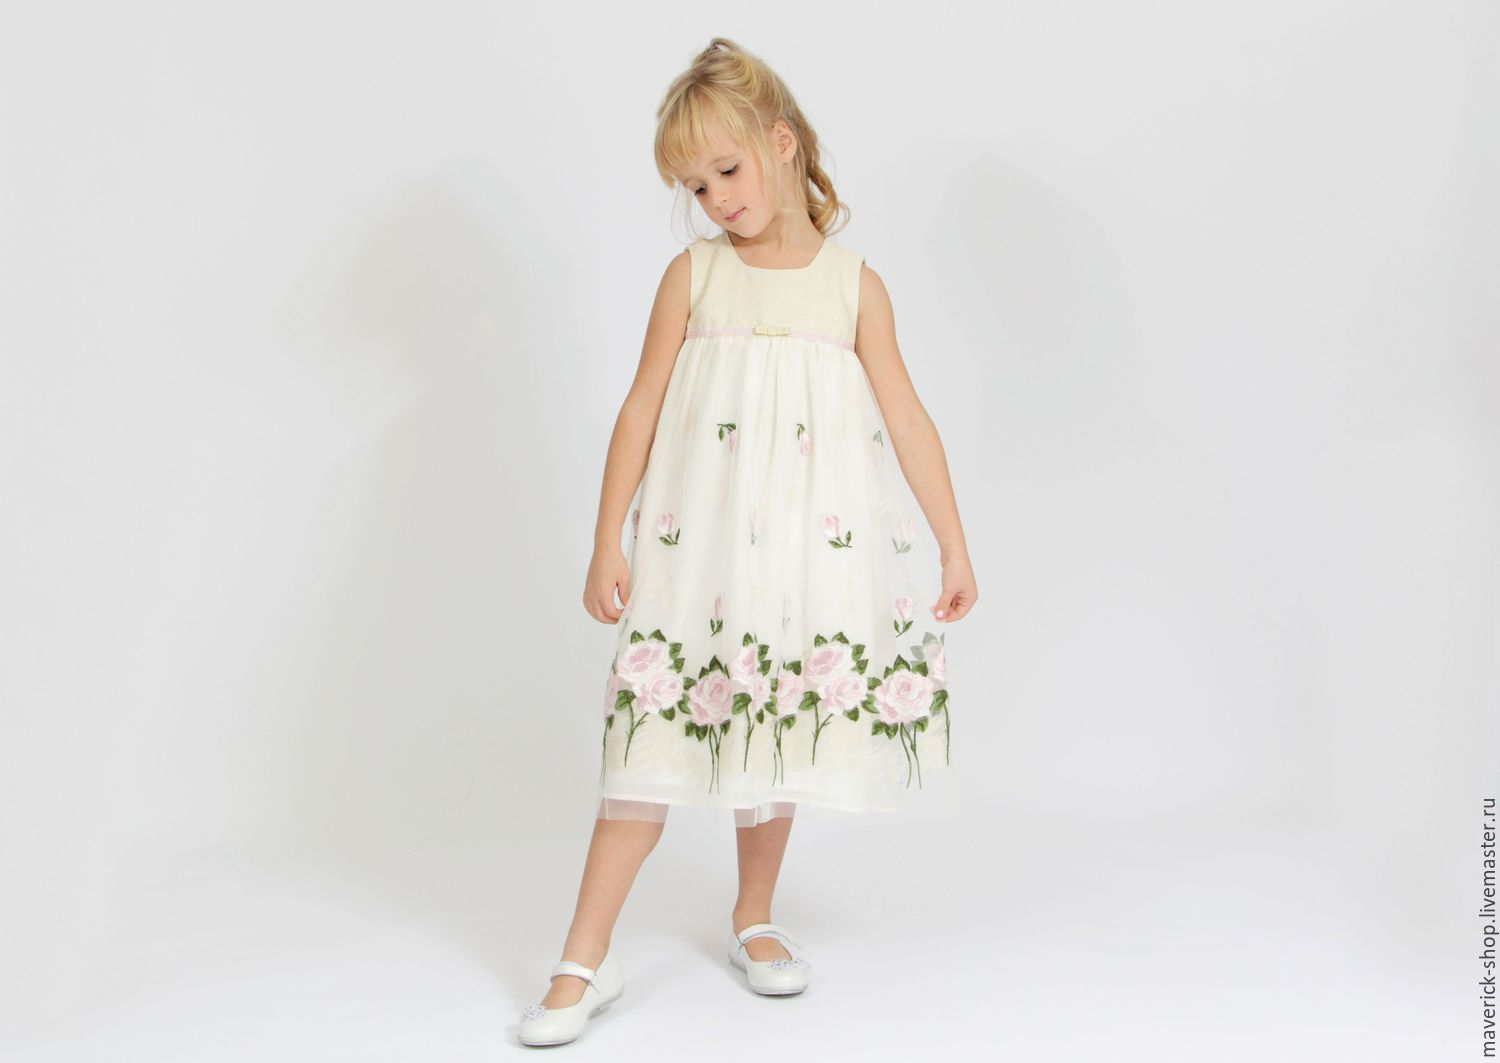 Möbel Im Shabby Look White Dressy Girl S Dress With Embroidered Roses In Shabby Chic Style Shop Online On Livemaster With Shipping